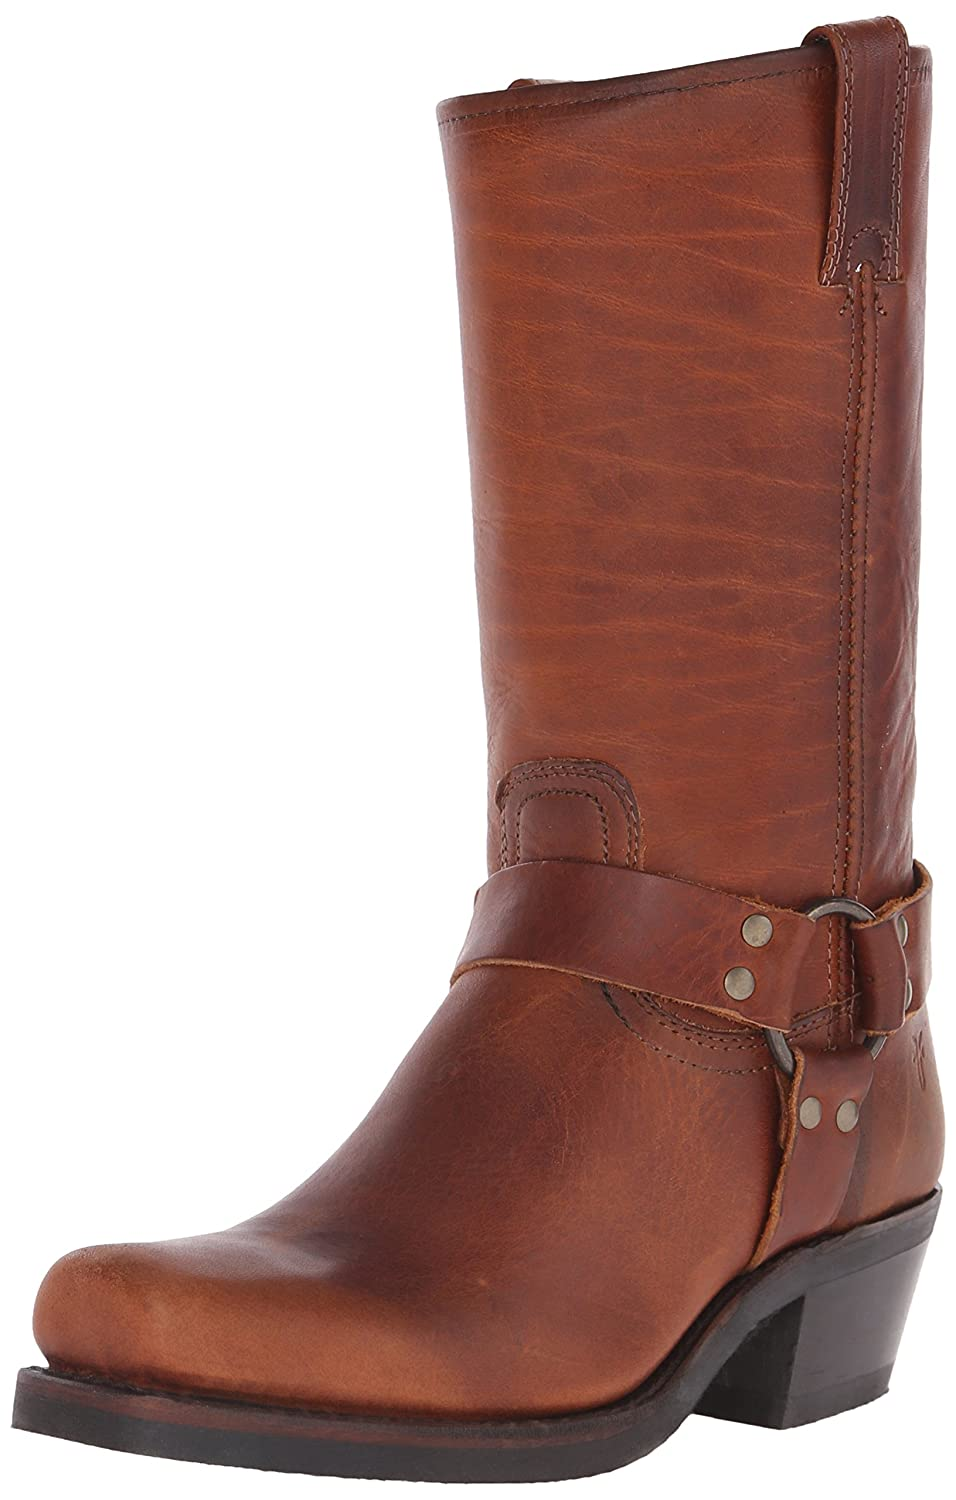 FRYE Women's 12R Harness Boot B00R54VHNI 6 B(M) US|Cognac Washed Oiled Vintage-77298